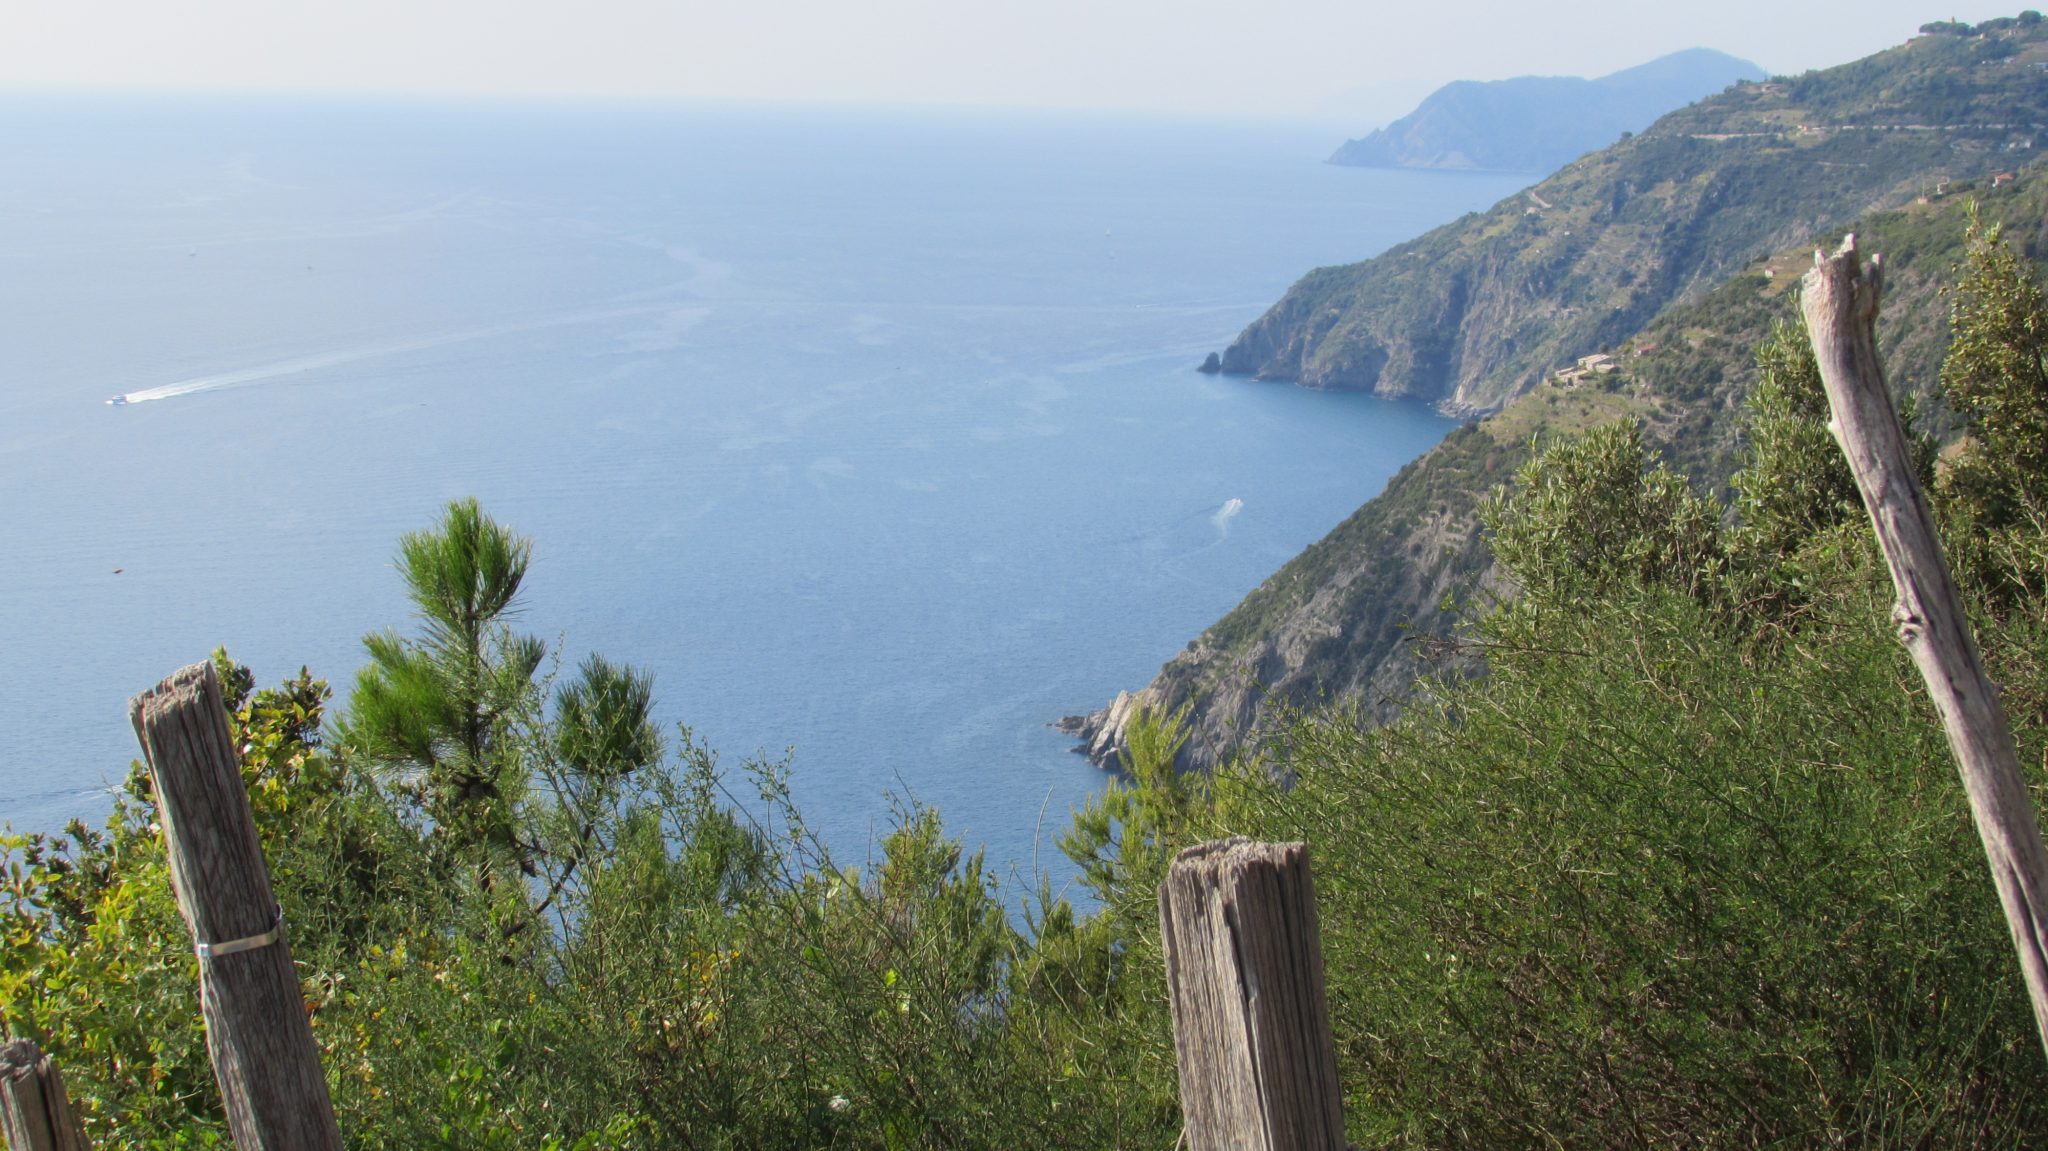 Hiking in Cinque Terre: make it a luxury experience